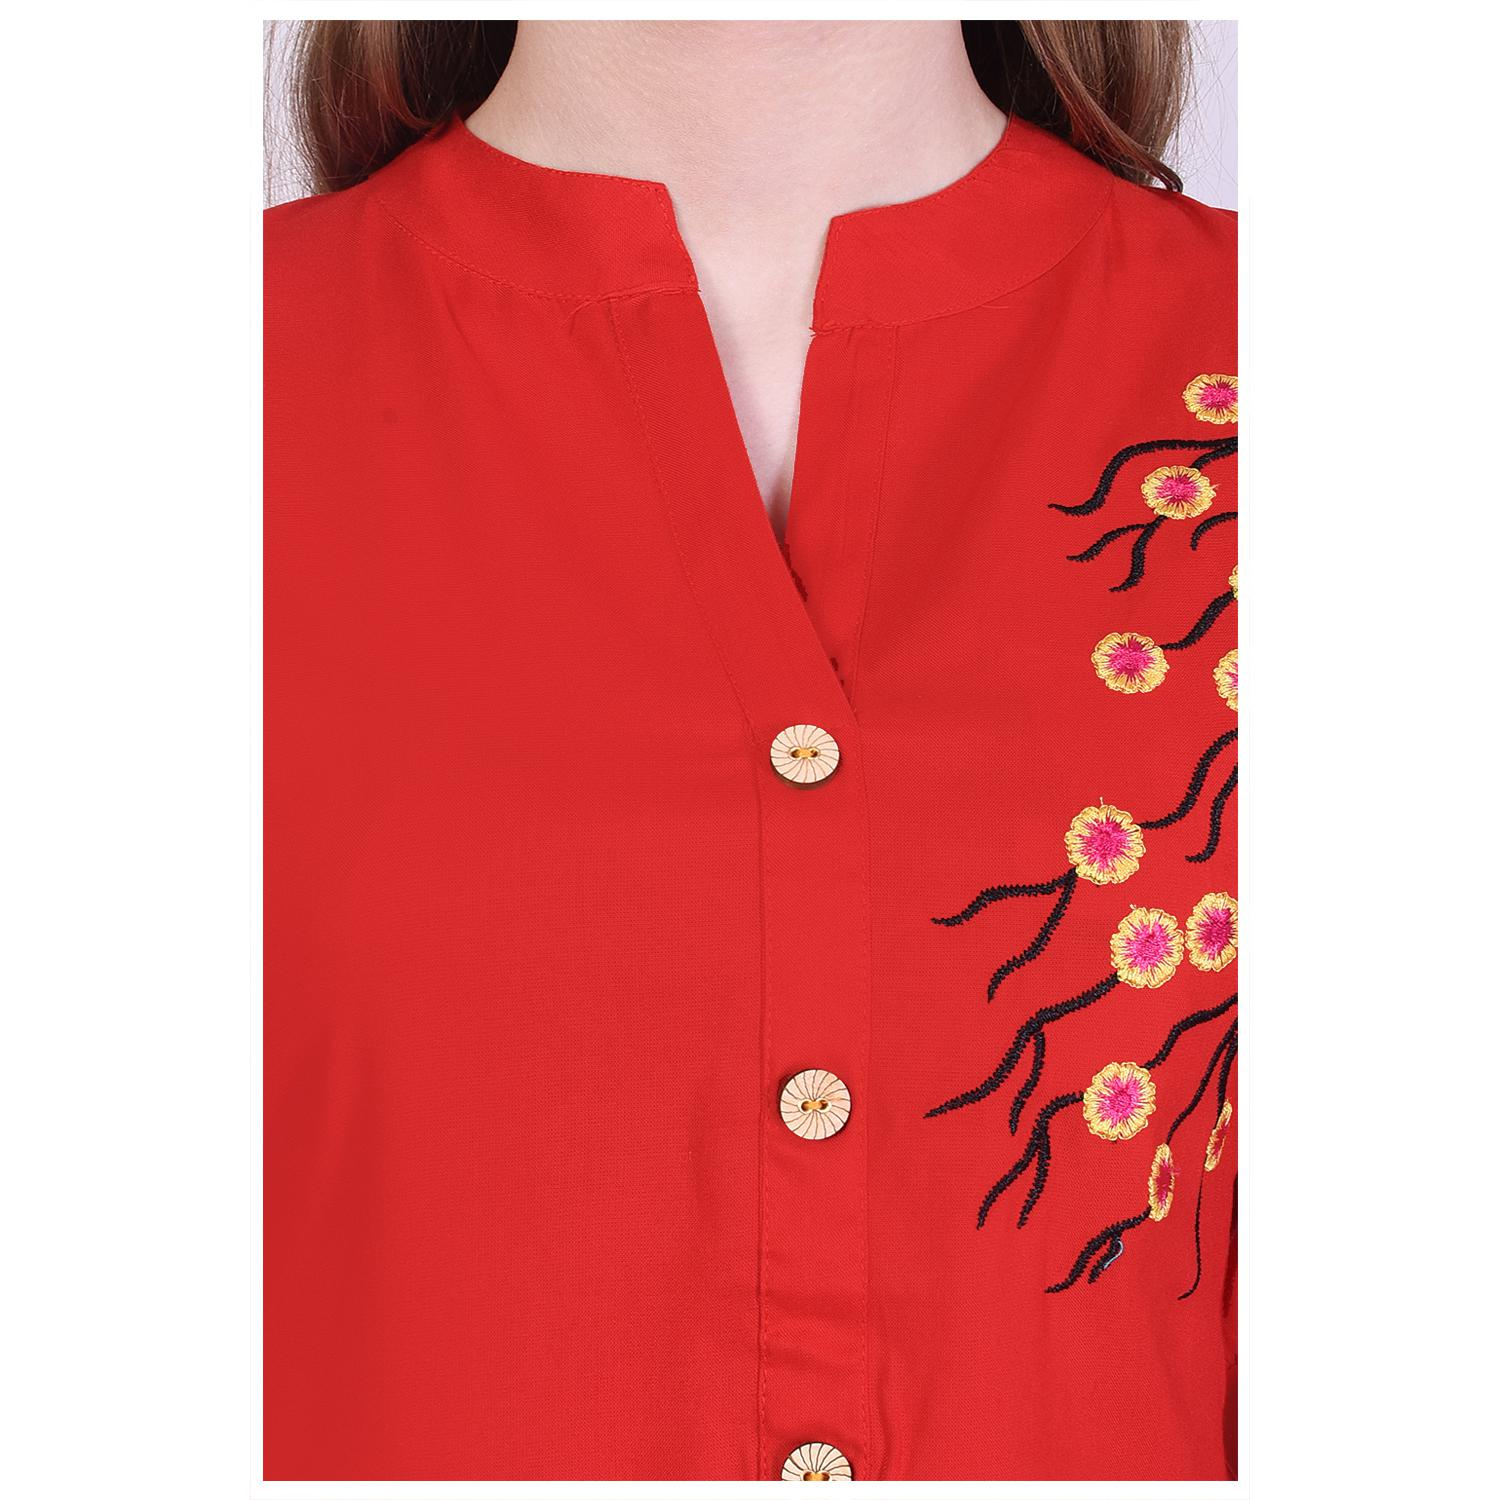 Pooja Fashion - Red Colored Casual Embroidered Cotton Kurti